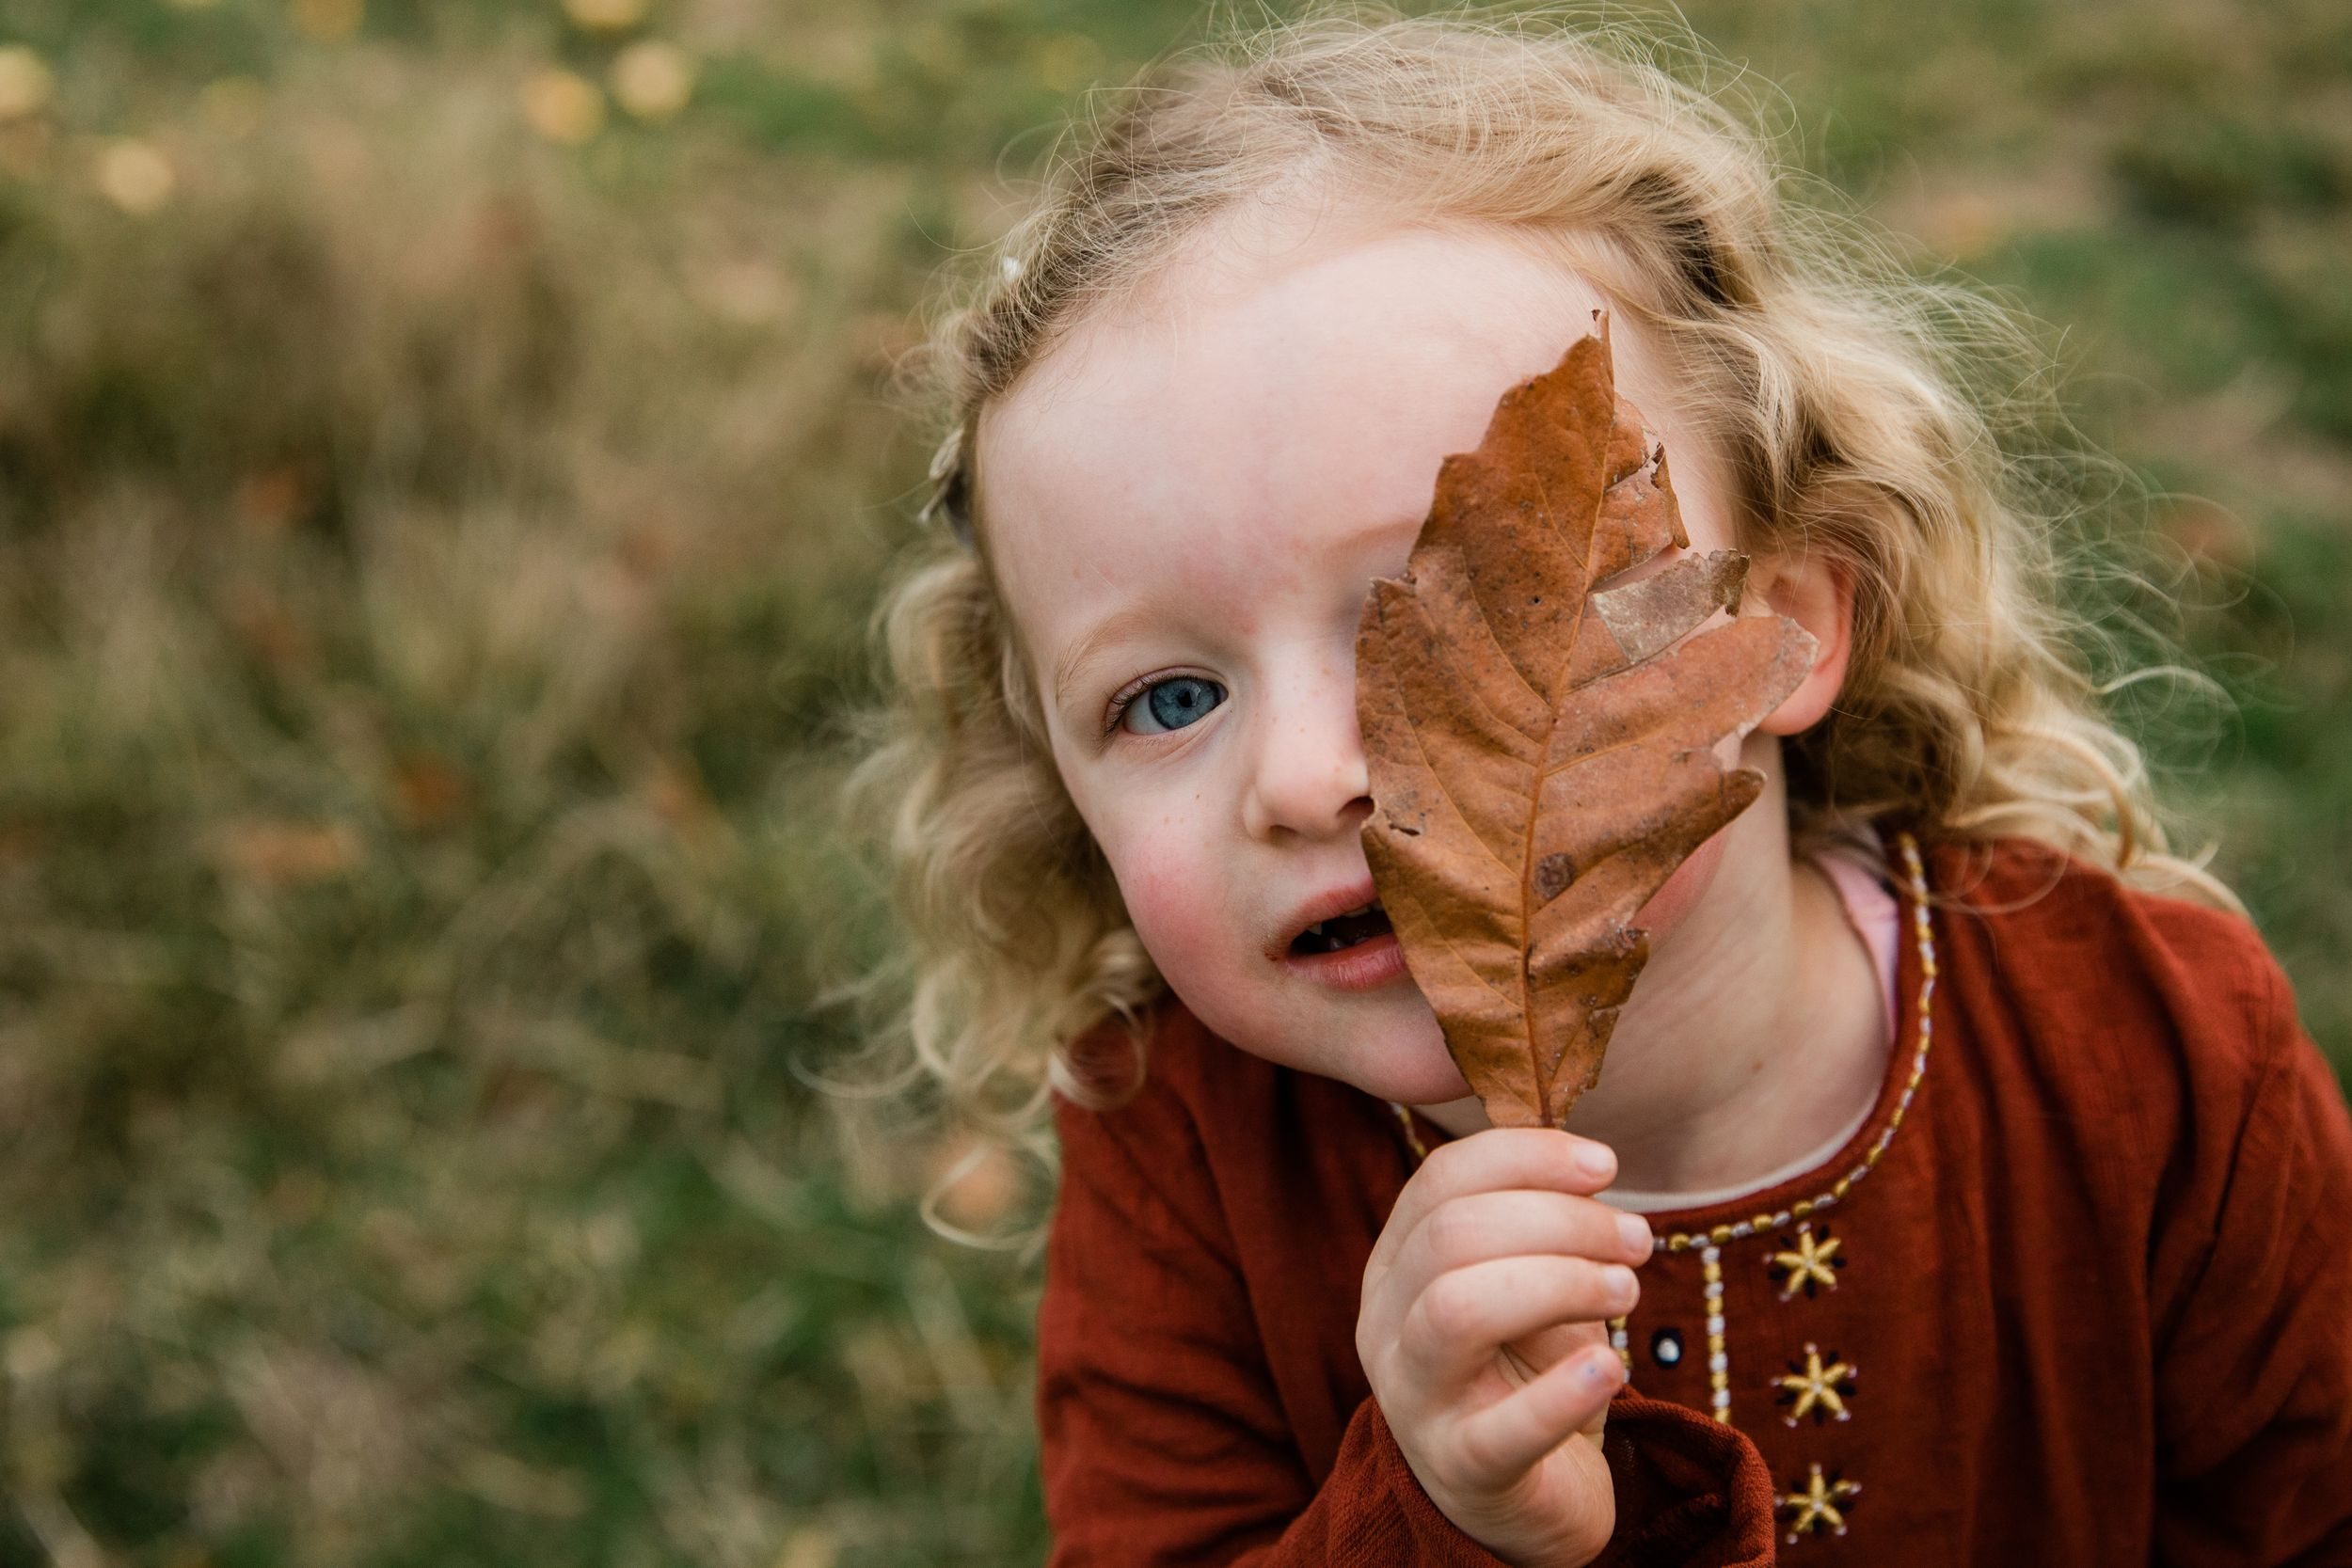 toddler holding an autumn leaf